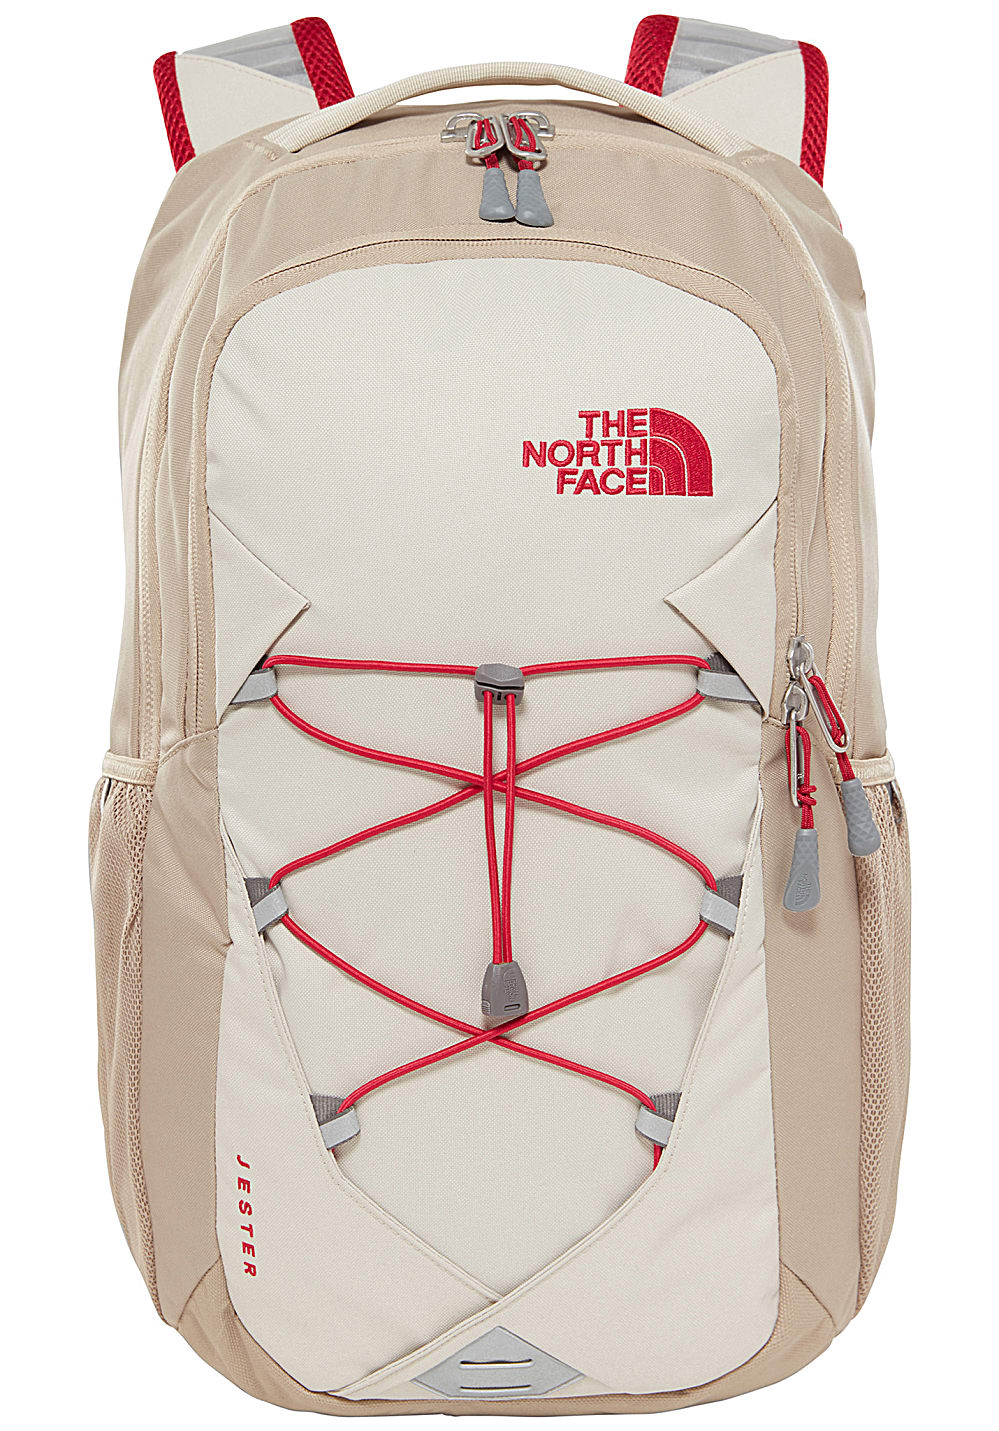 The North Face Jester - Rucksack für Damen - Beige